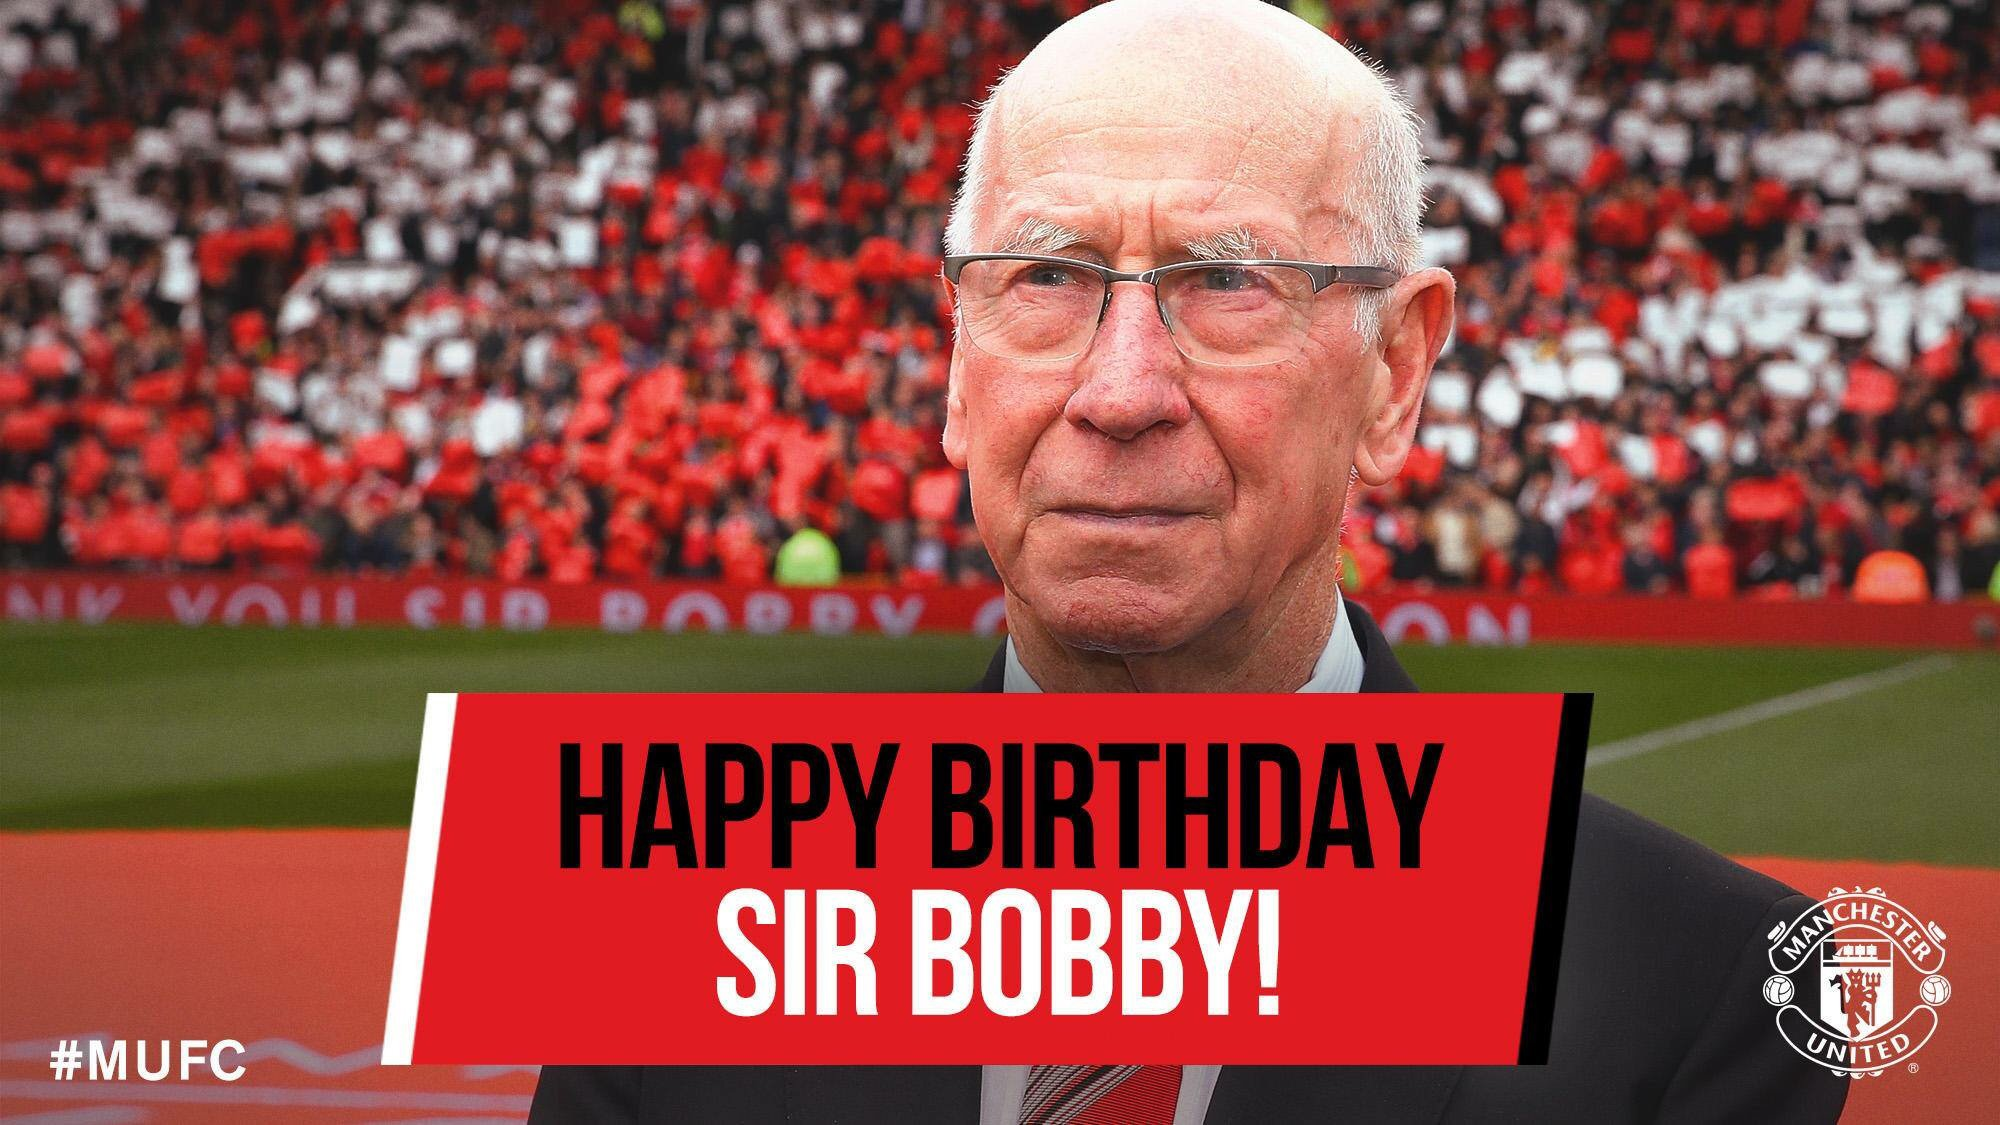 Have a great Wednesday guys, and a Happy Birthday to Sir Bobby Charlton 80 Today !